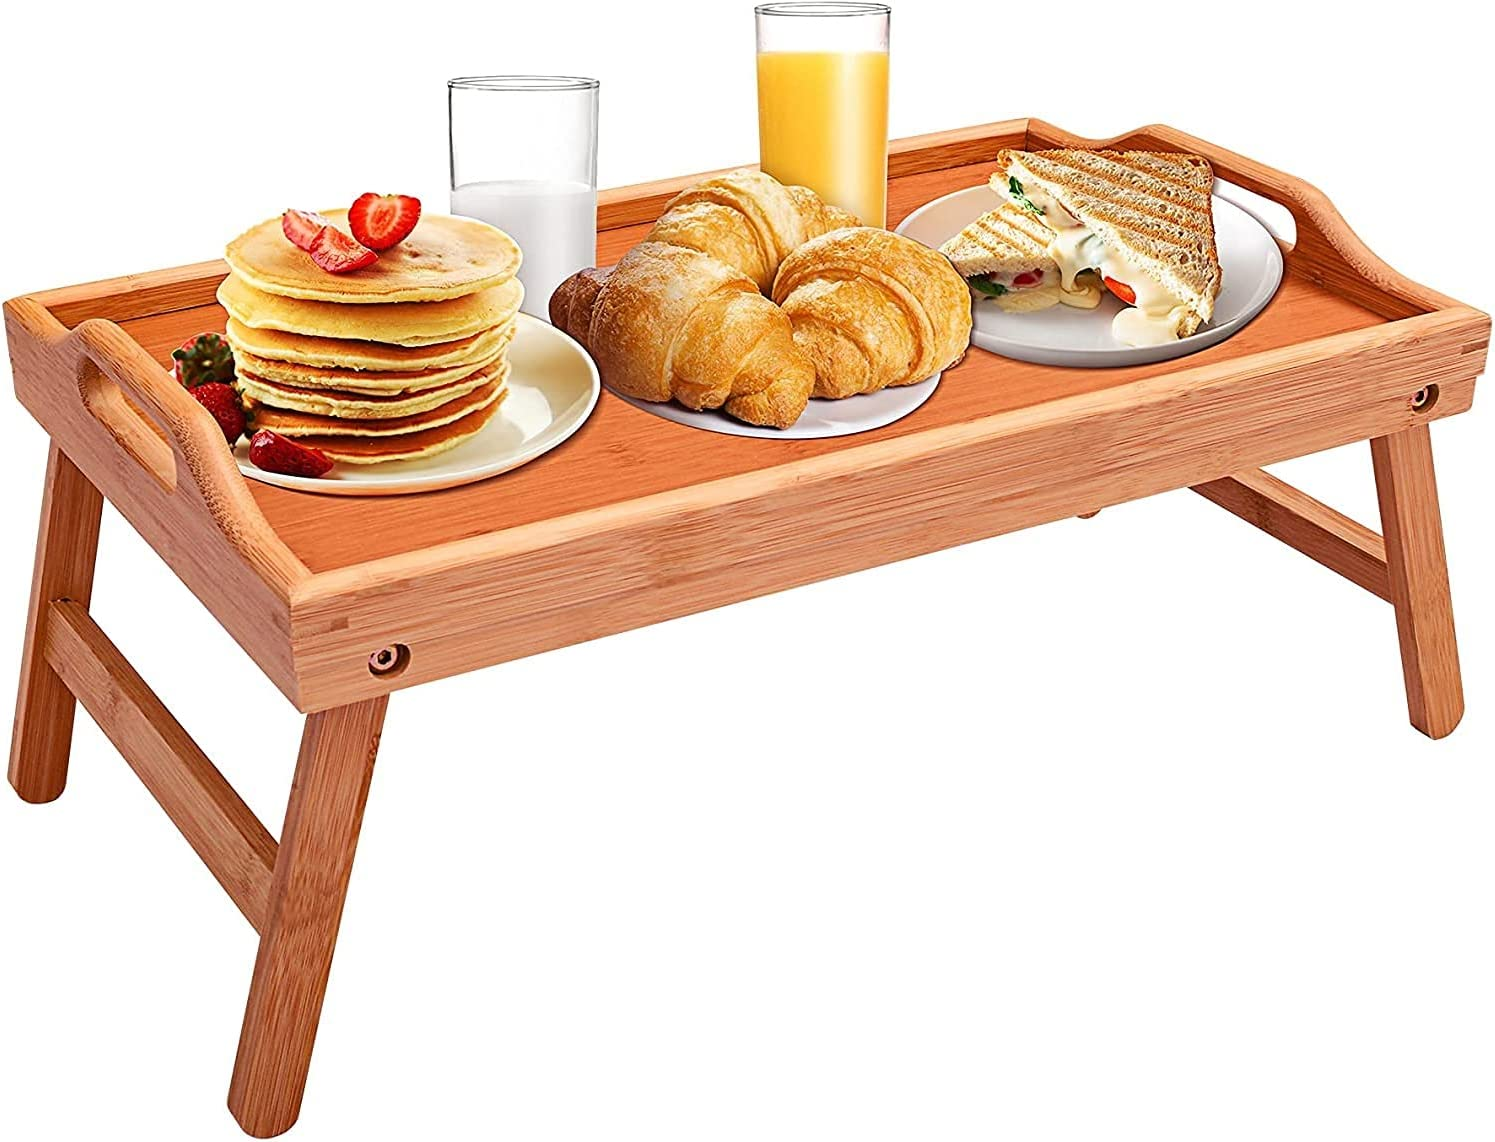 JYHZ Selling rankings Dining Bed Tray Table with Ranking TOP11 Foldable Breakfast Bamboo